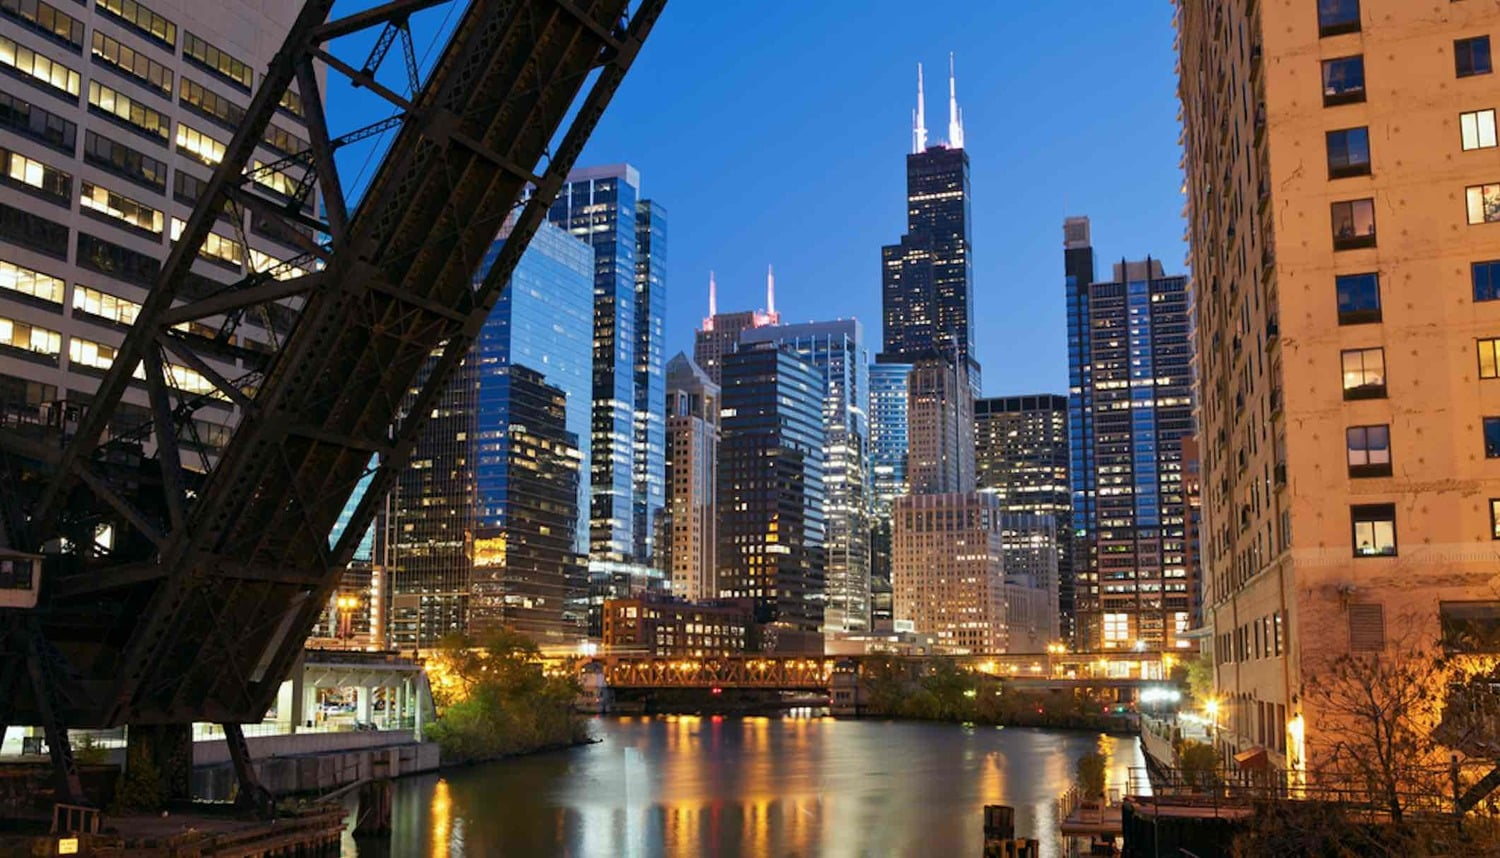 5 unique things you 39 ll find at chicago hotels 52 perfect for Romantic hotels in chicago